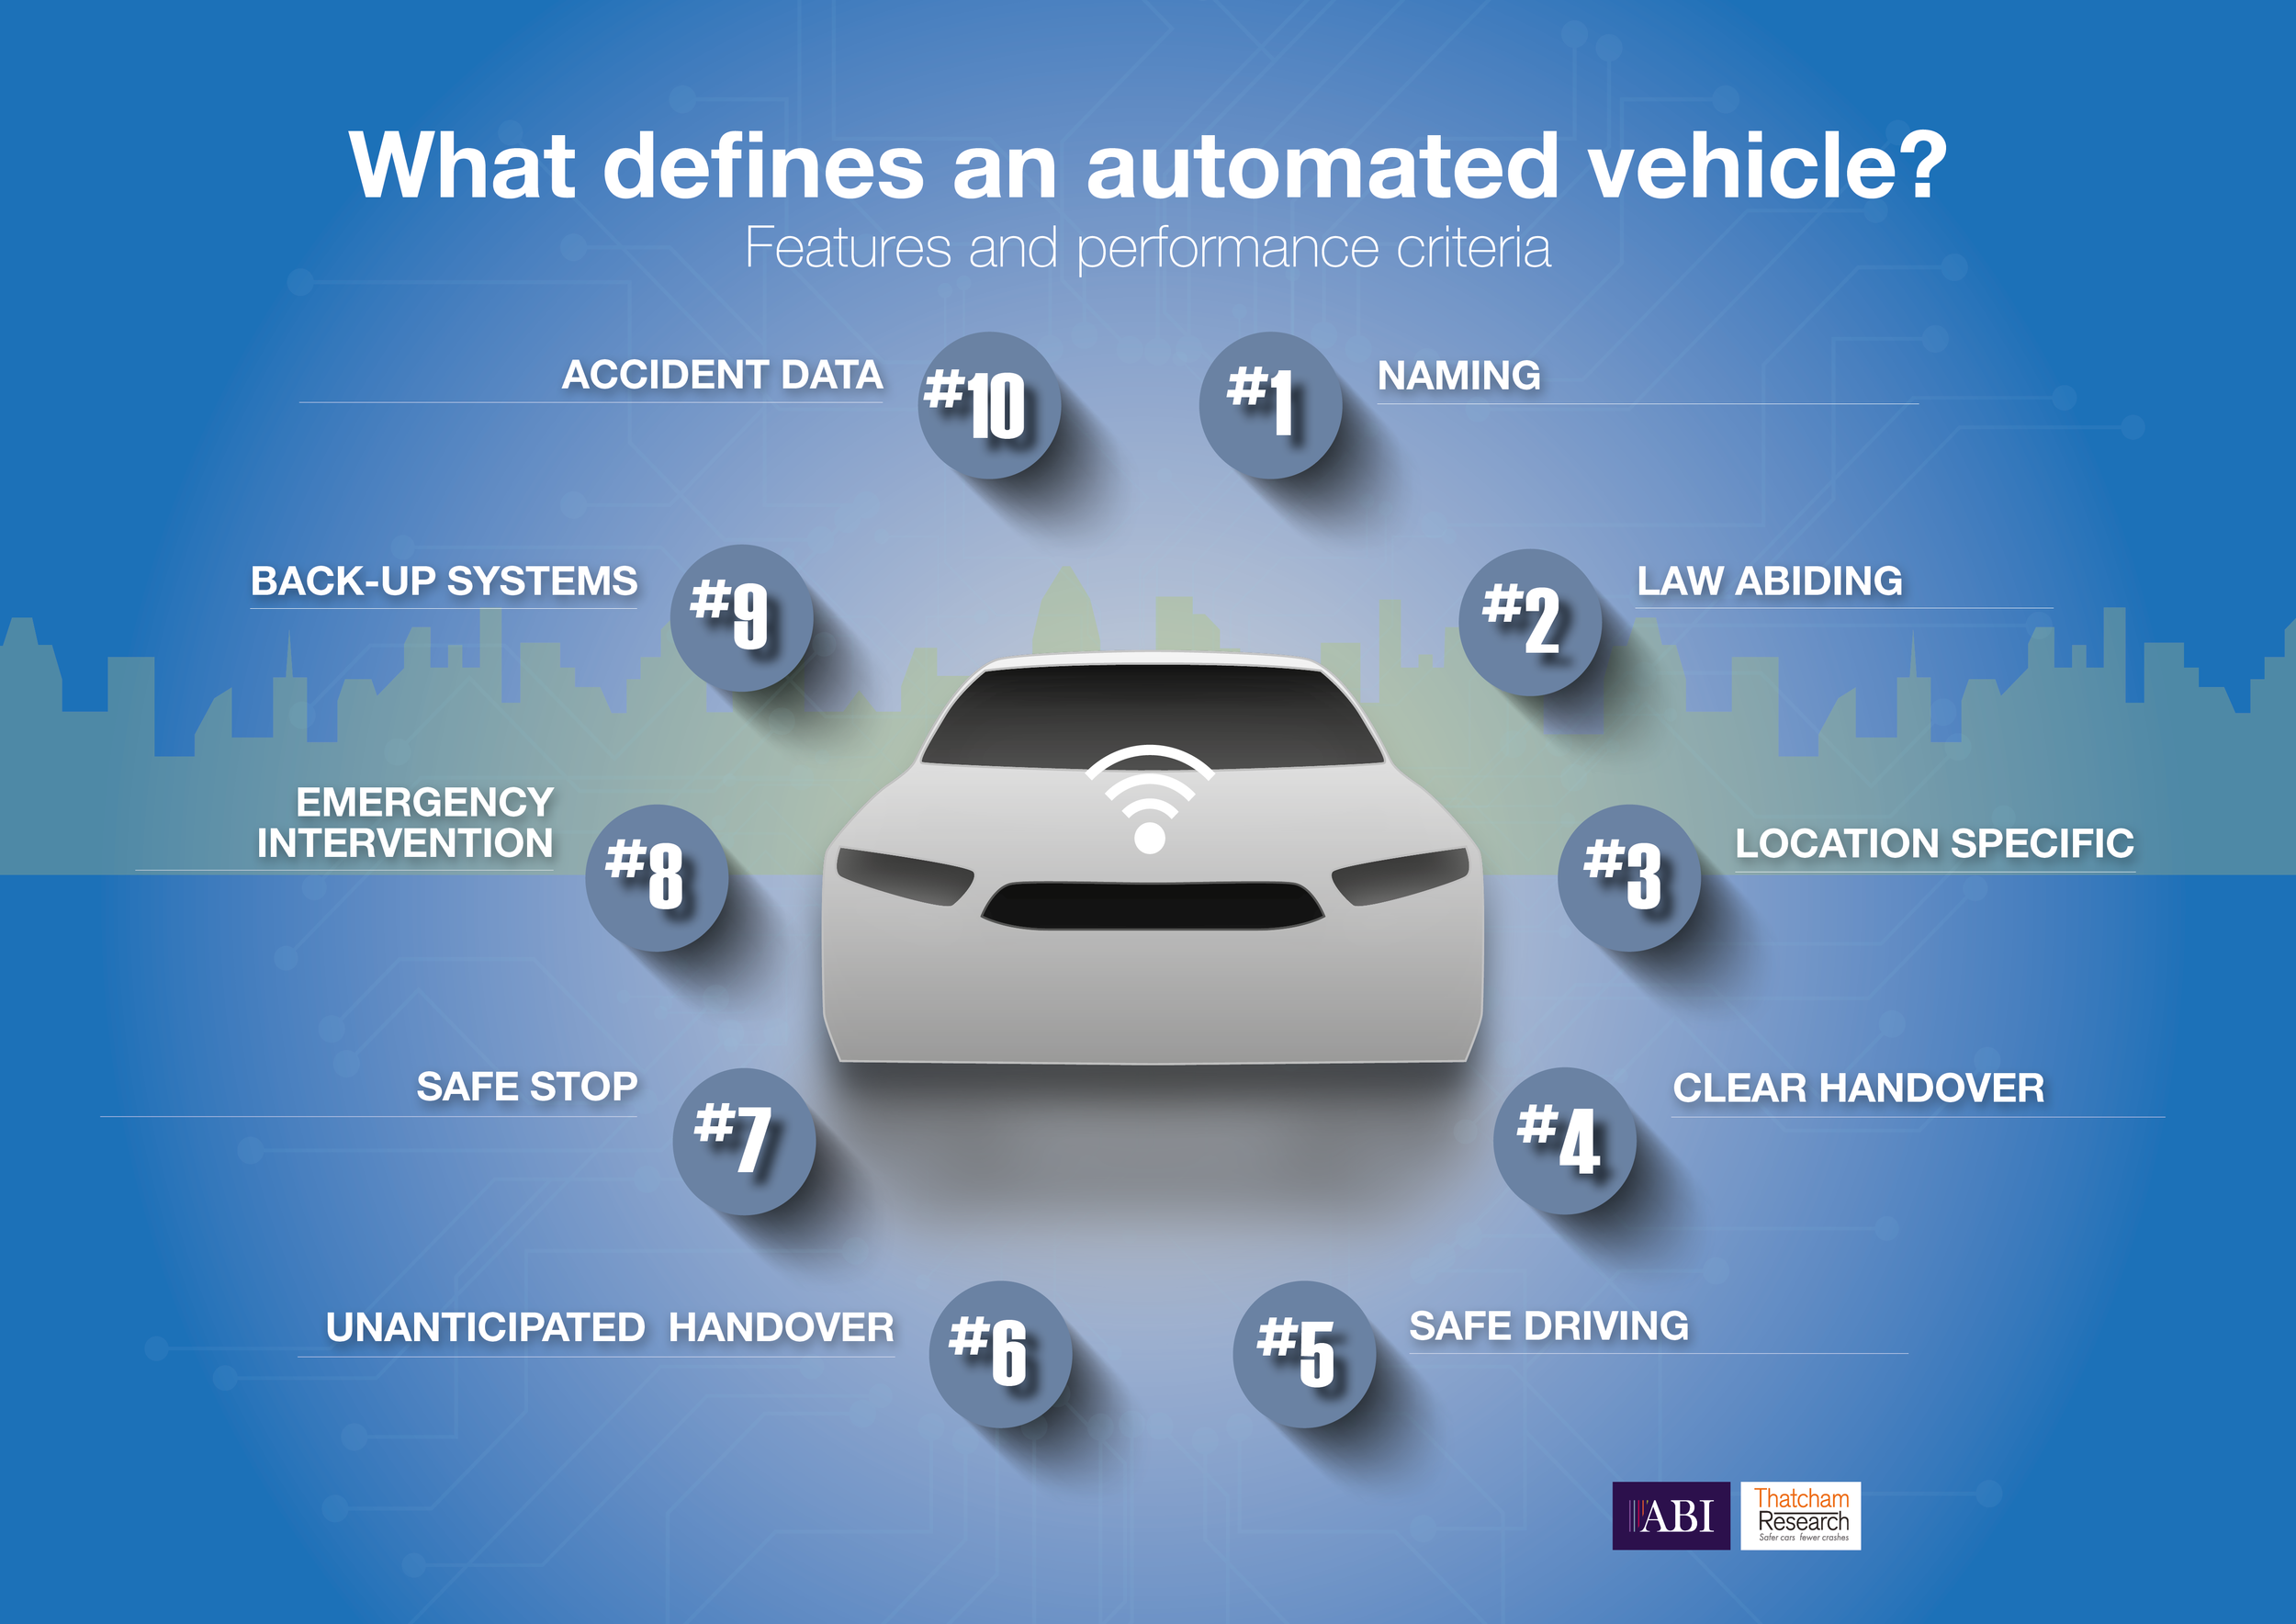 The ten key features and performance criteria of an automated vehicle (image credit: ABI / Thatcham research)